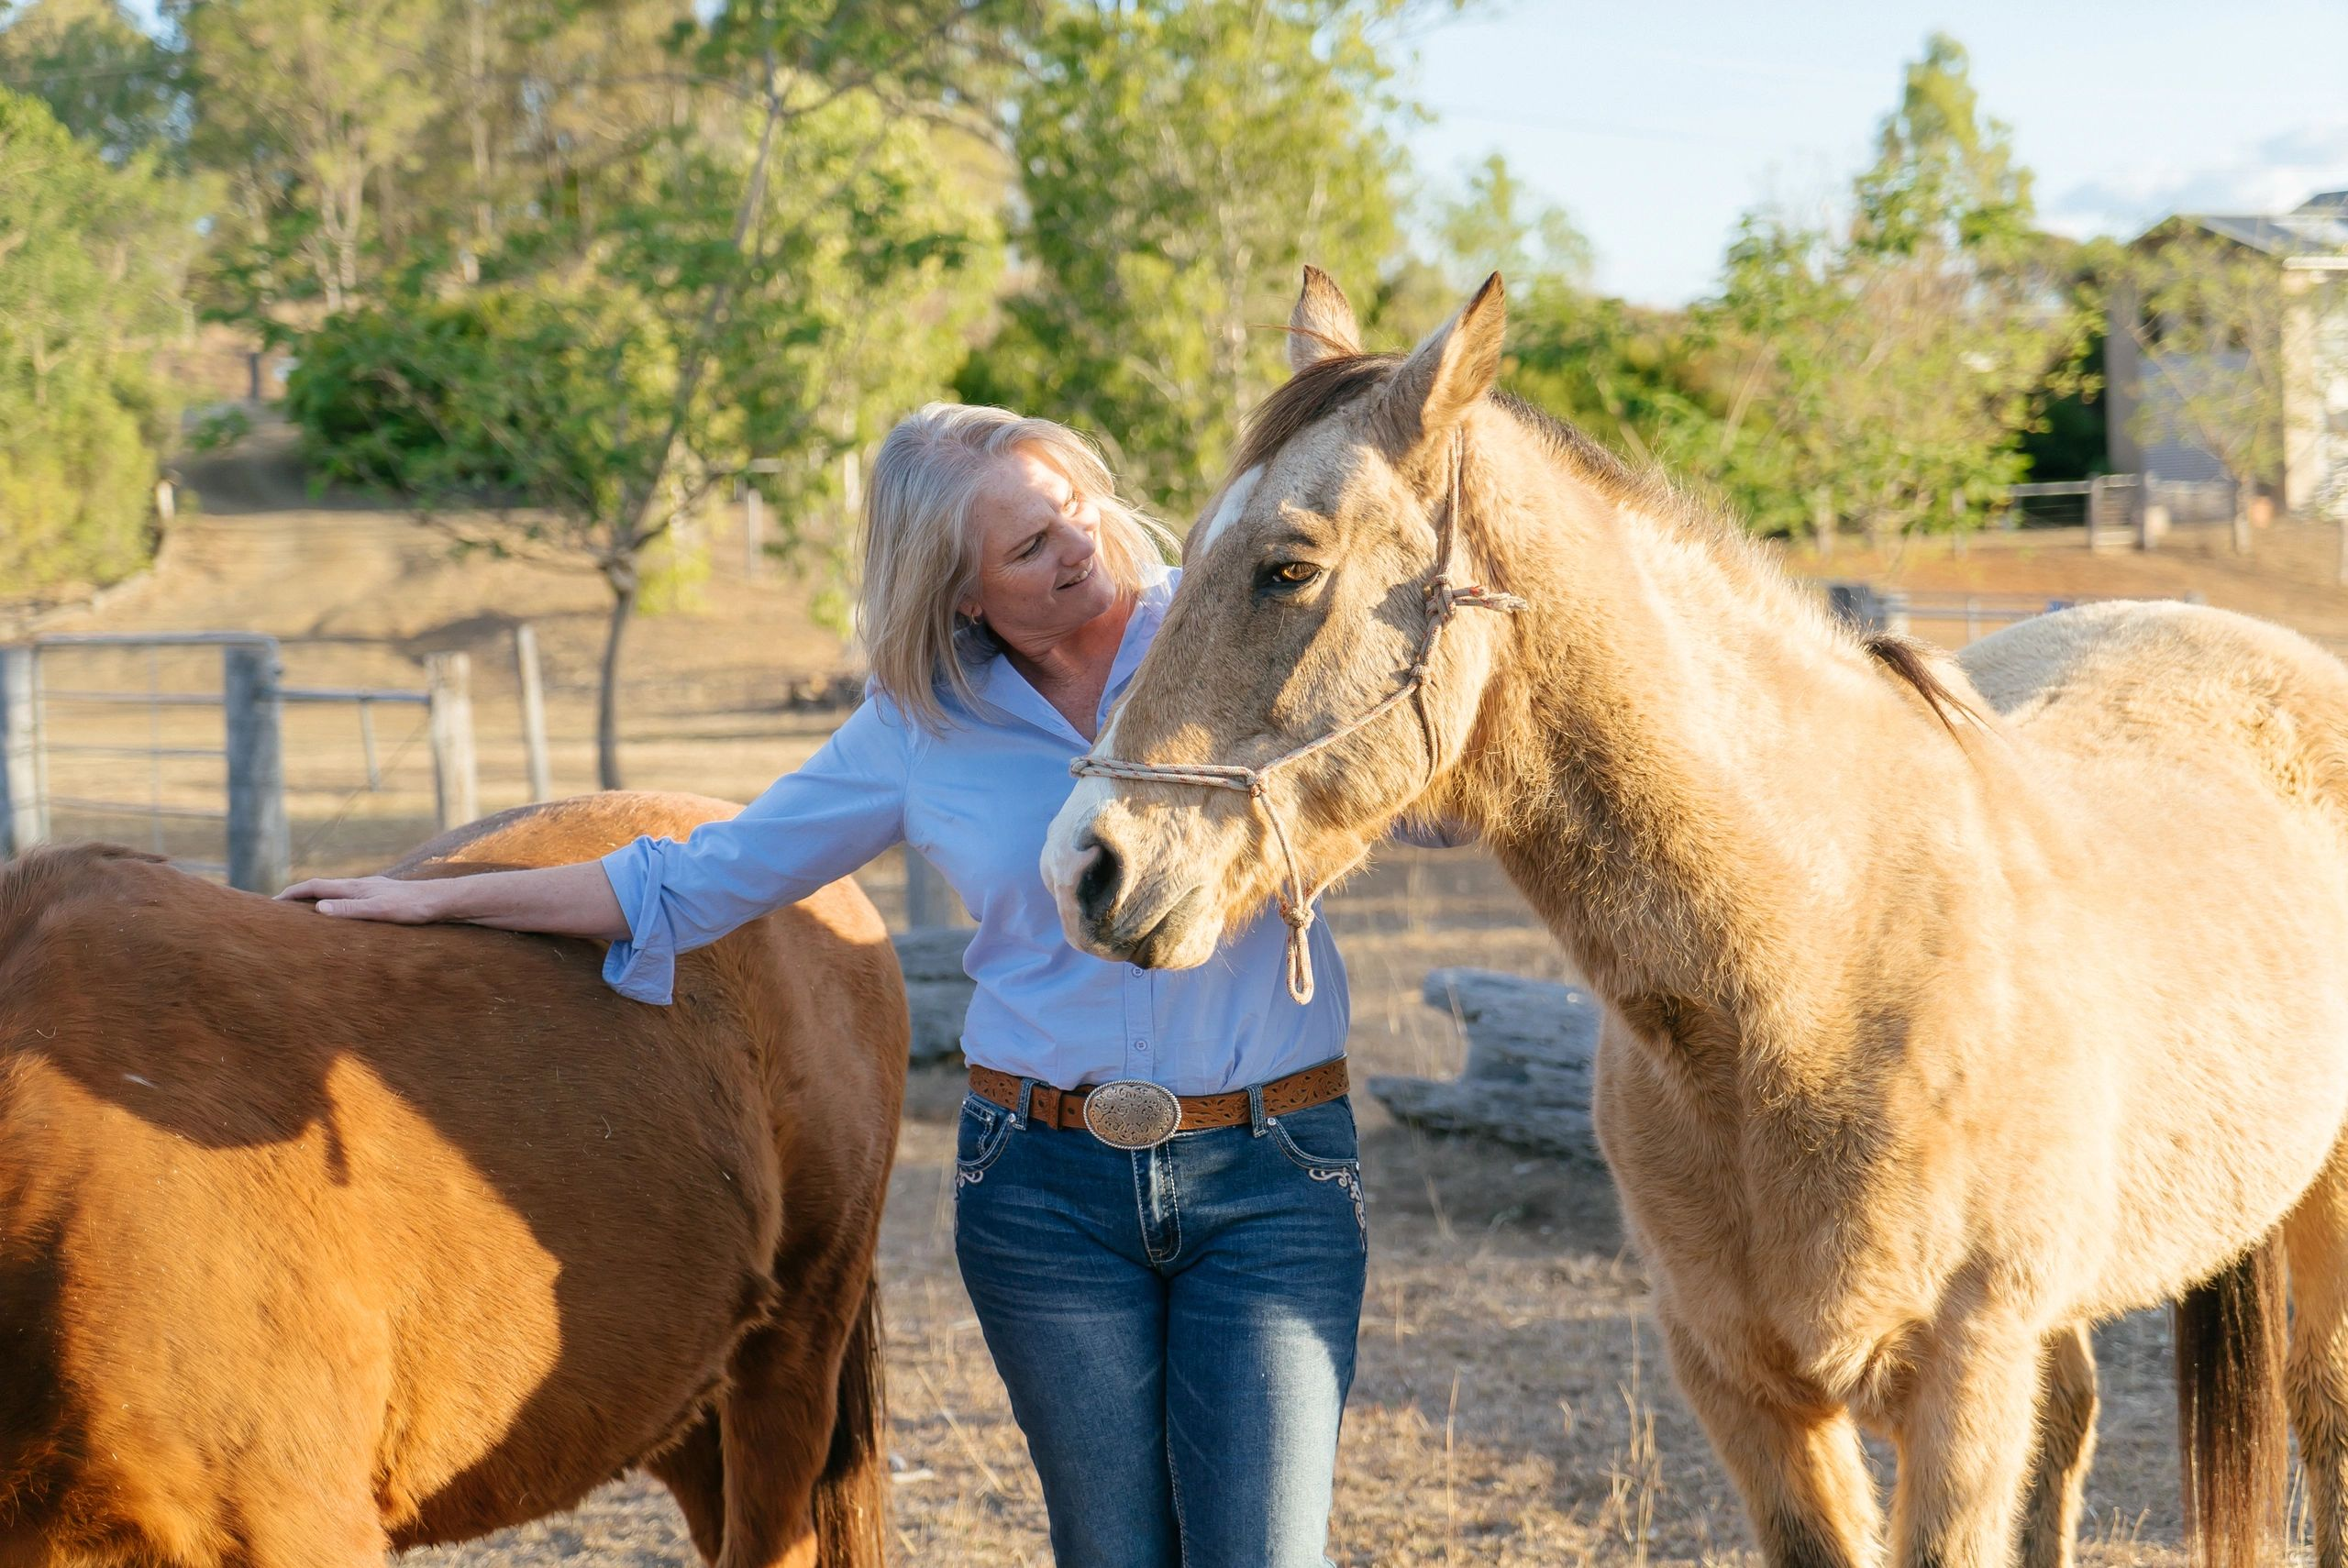 Equine therapy and learning, working with horses to create awareness, acceptance and congrency.